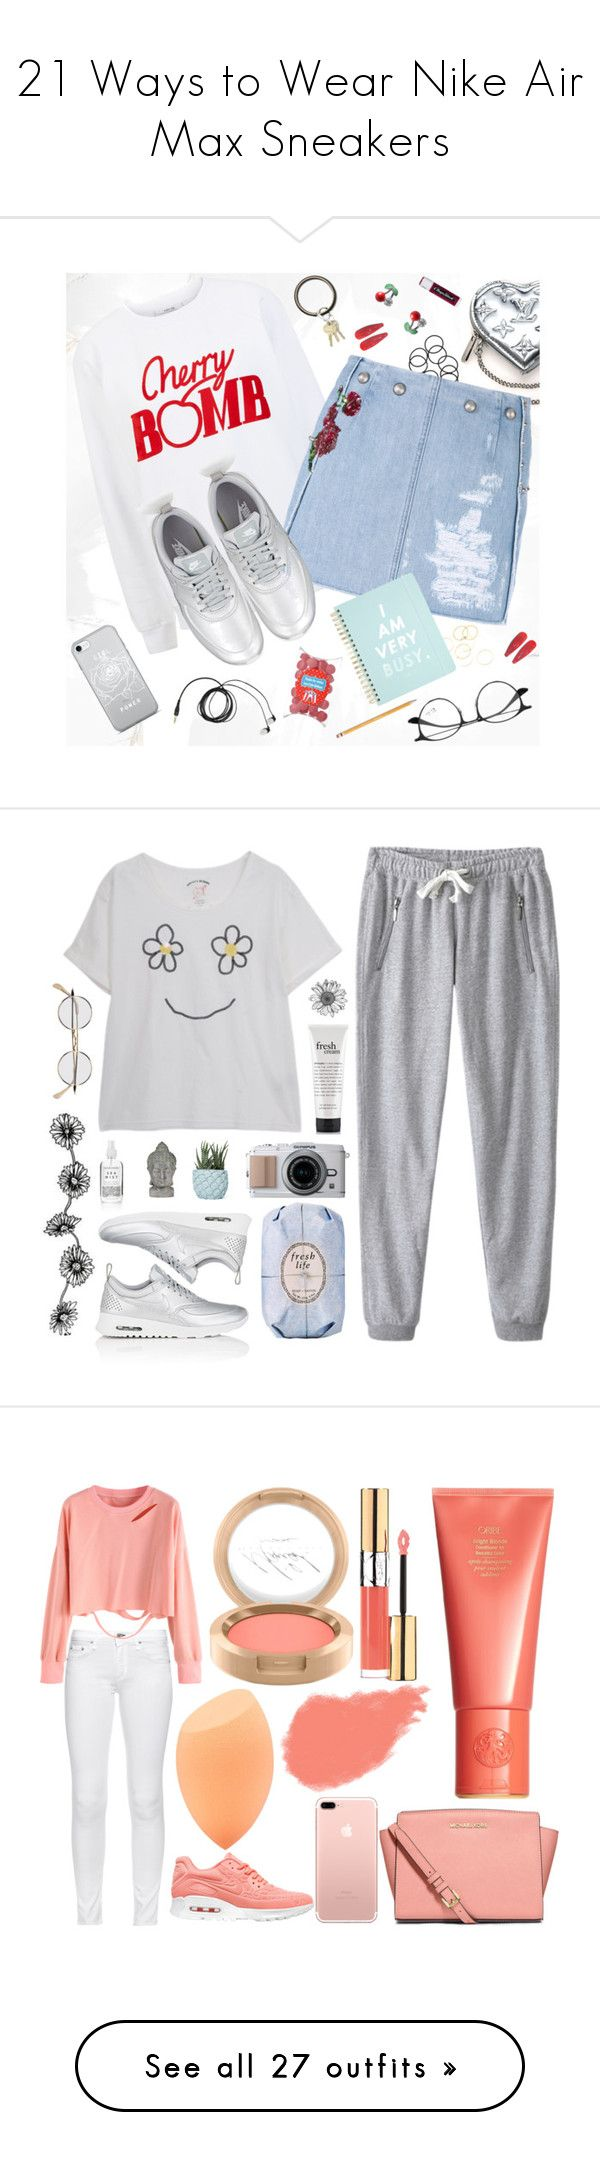 """""""21 Ways to Wear Nike Air Max Sneakers"""" by polyvore-editorial ❤ liked on Polyvore featuring nikeairmax, waystowear, Louis Vuitton, Ganni, Dolce&Gabbana, NIKE, ban.do, A.V. Max, O-Venture and Chapstick"""